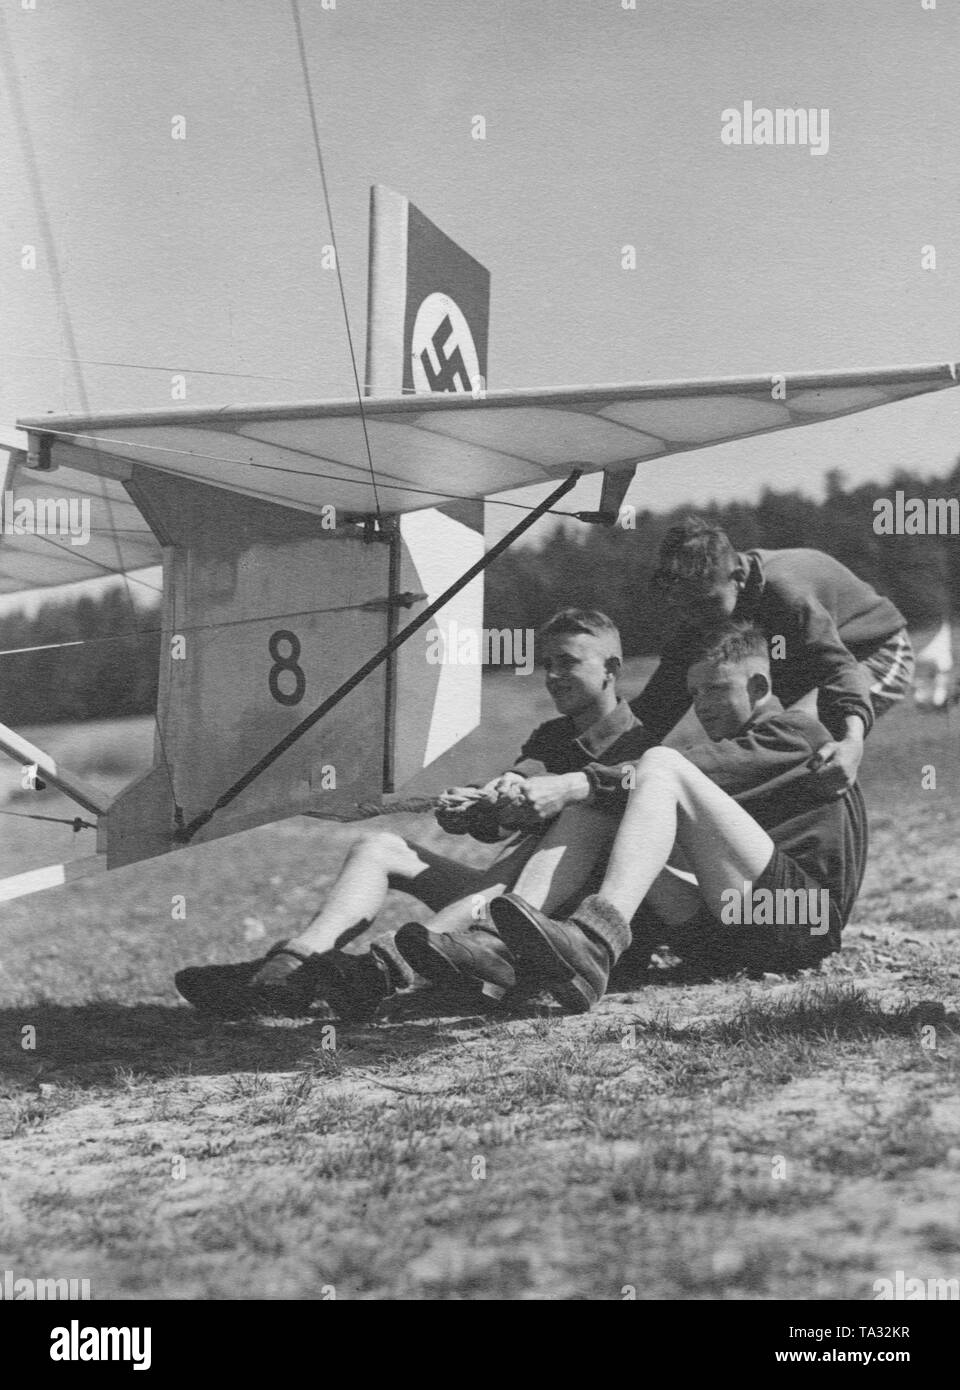 Hitler Youth members secure a glider in the gliding school Harsberg in Thuringia before takeoff. - Stock Image